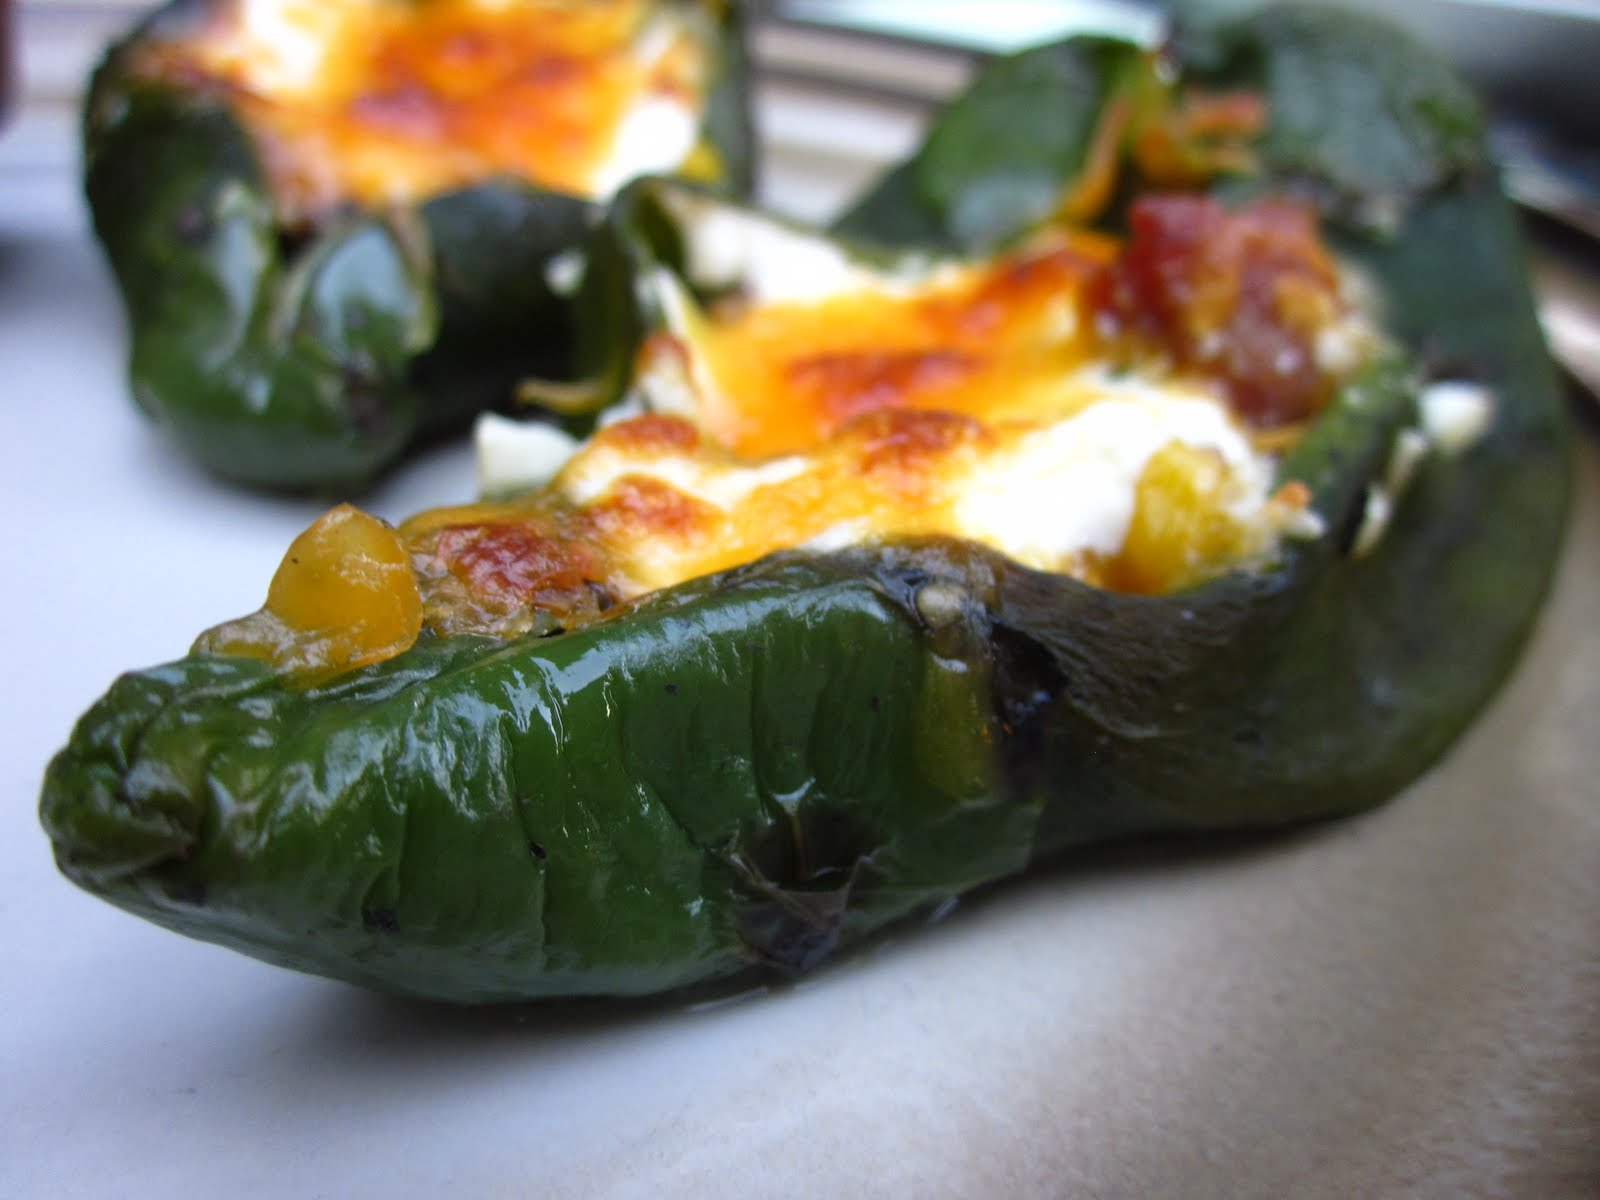 Pastry Prose: Baked Chile Rellenos with Corn and Crema